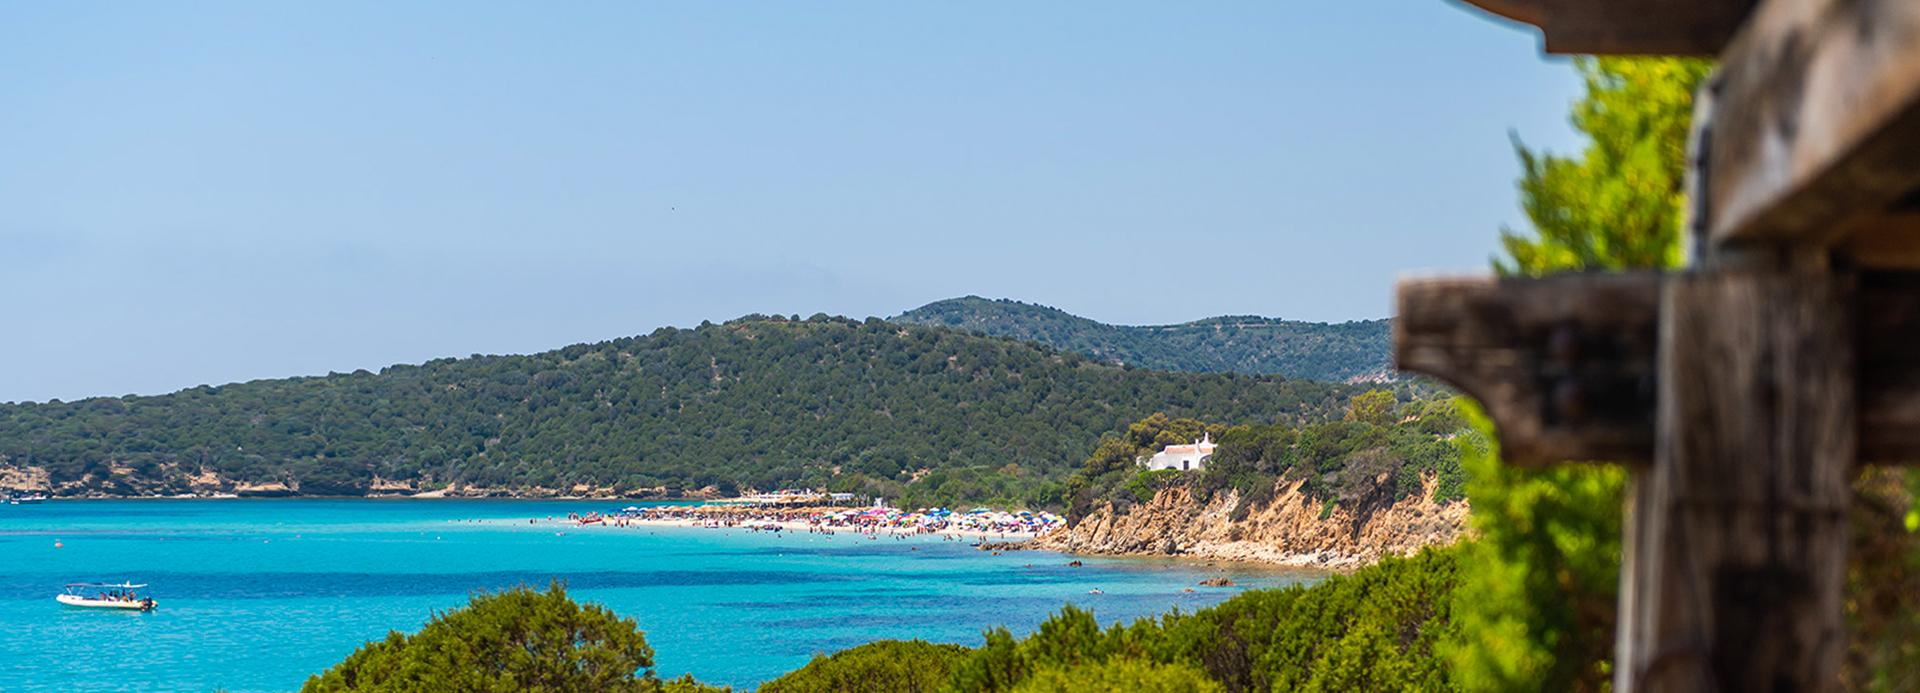 Sardinia Hotels - The Best Hotels in Sardinia for your ...